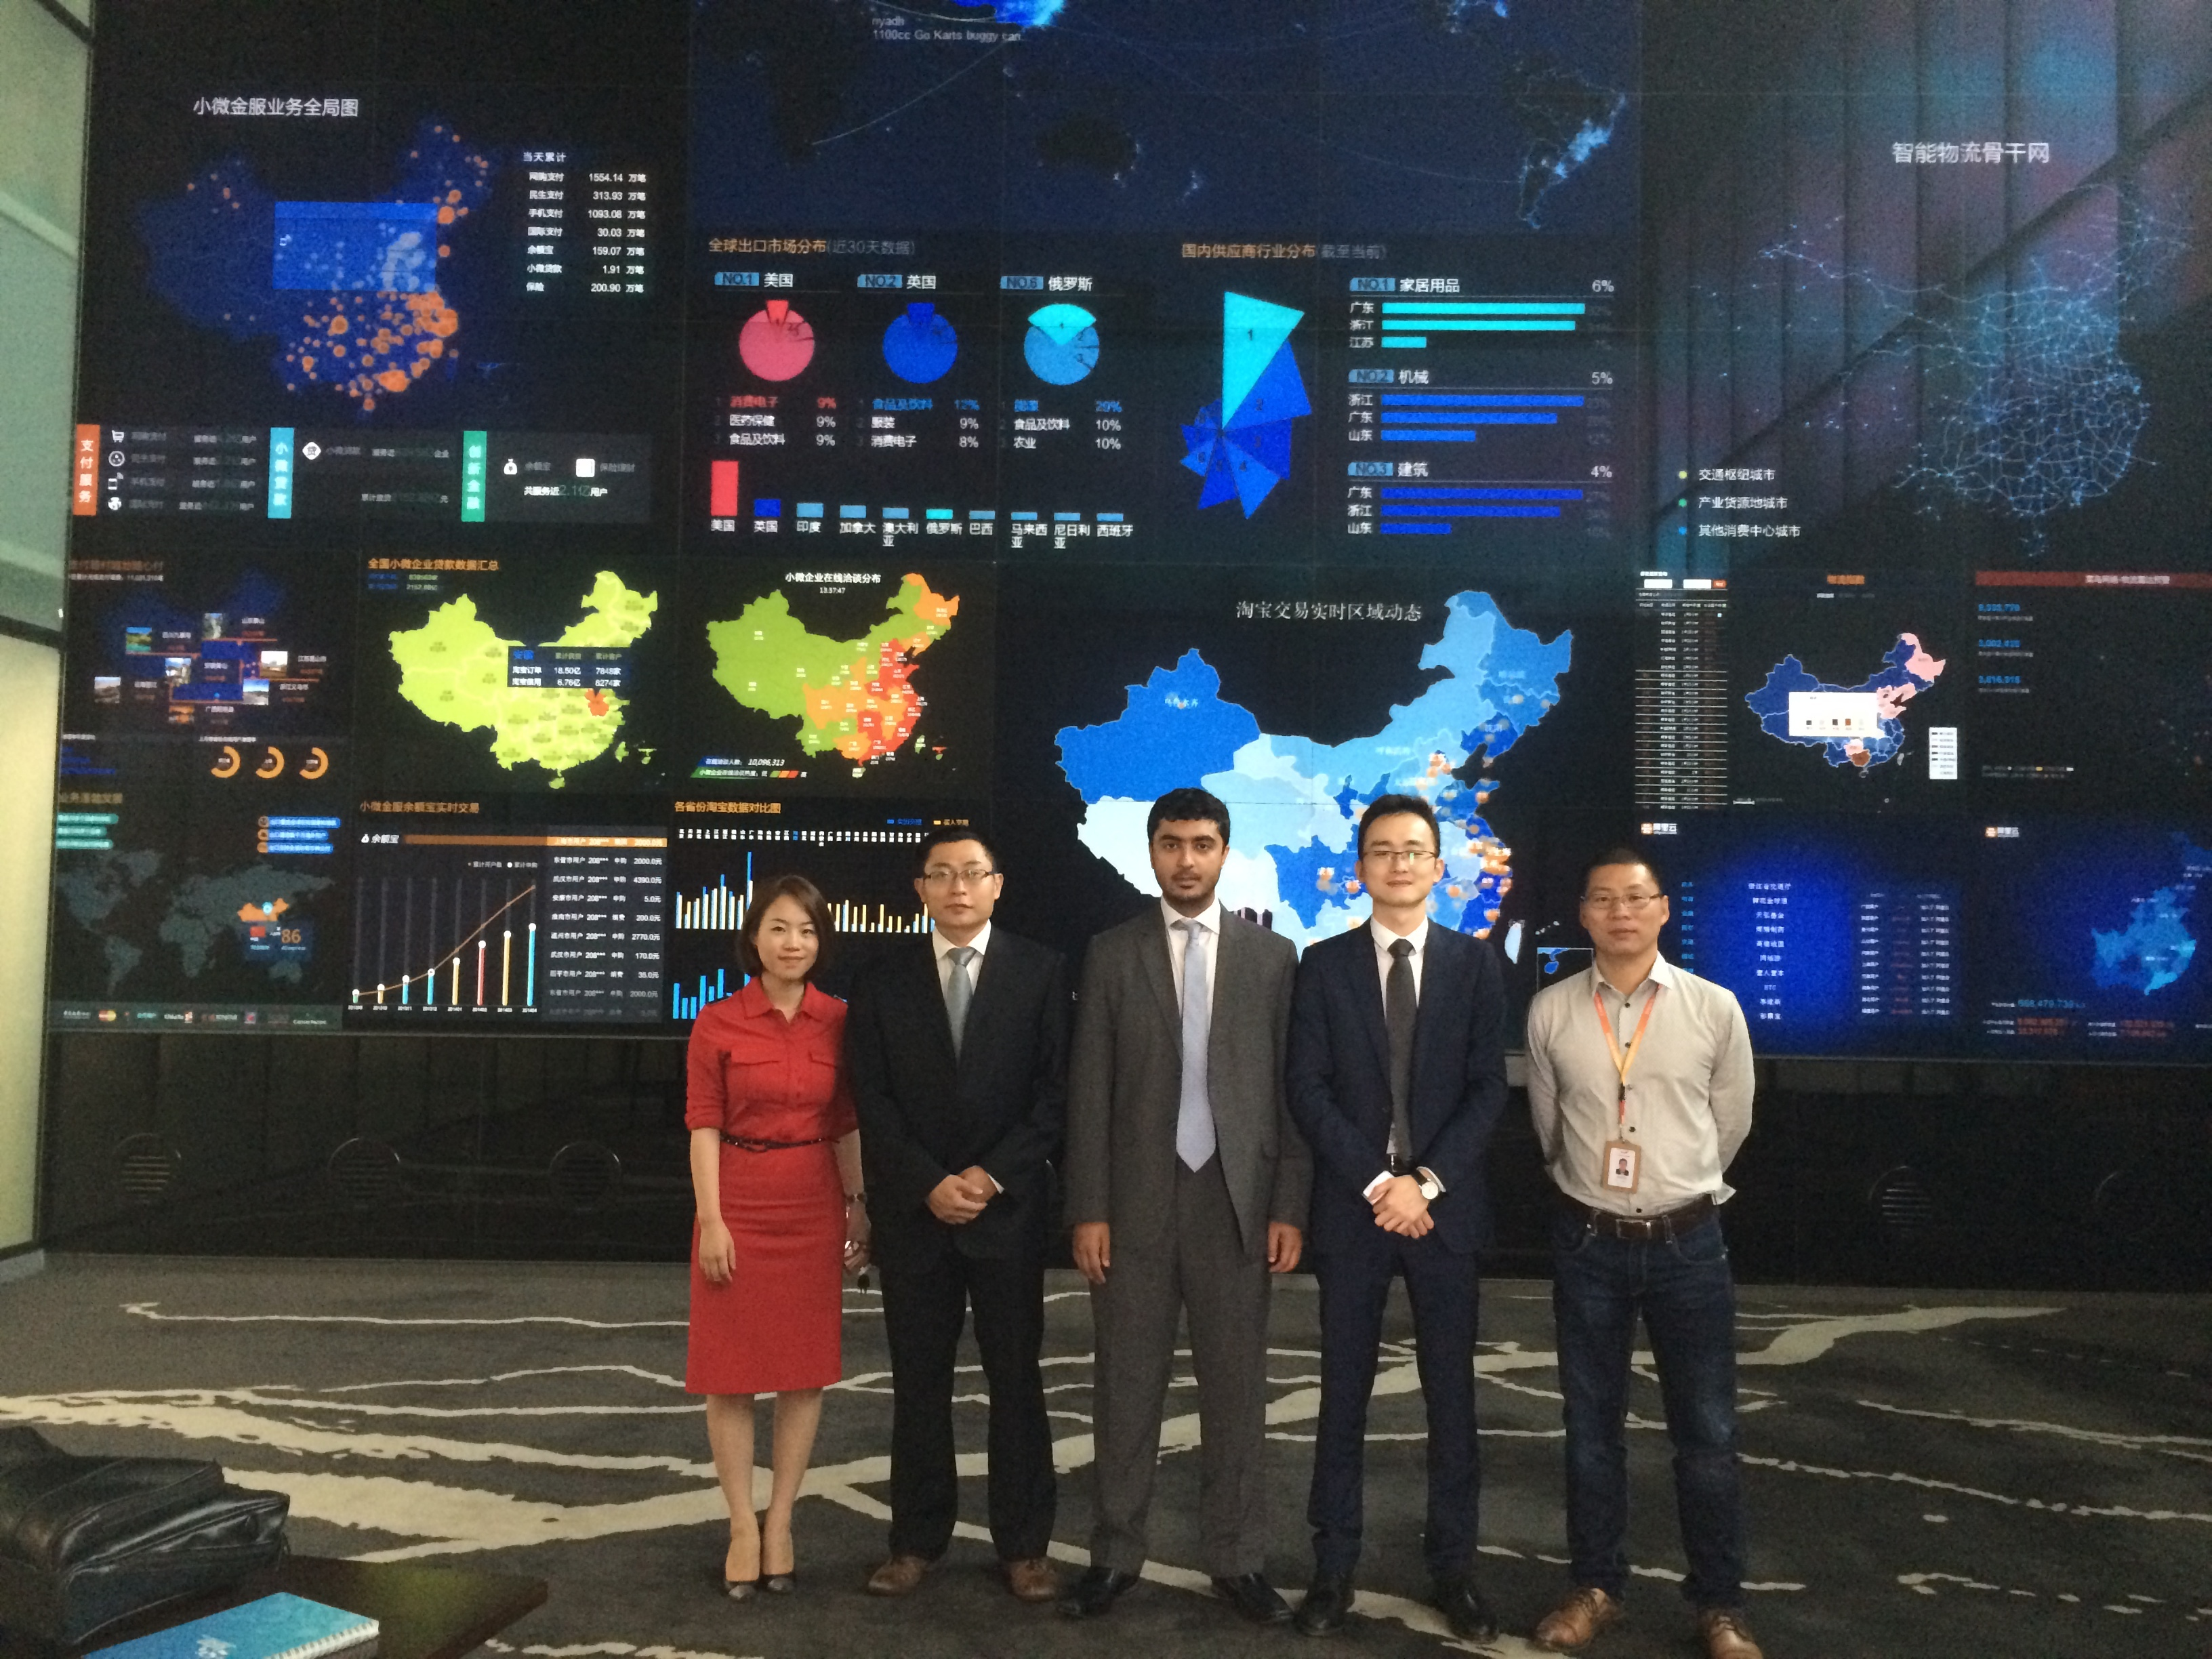 Jafza Group Photo during the roadshow in China (Photo: Business Wire)